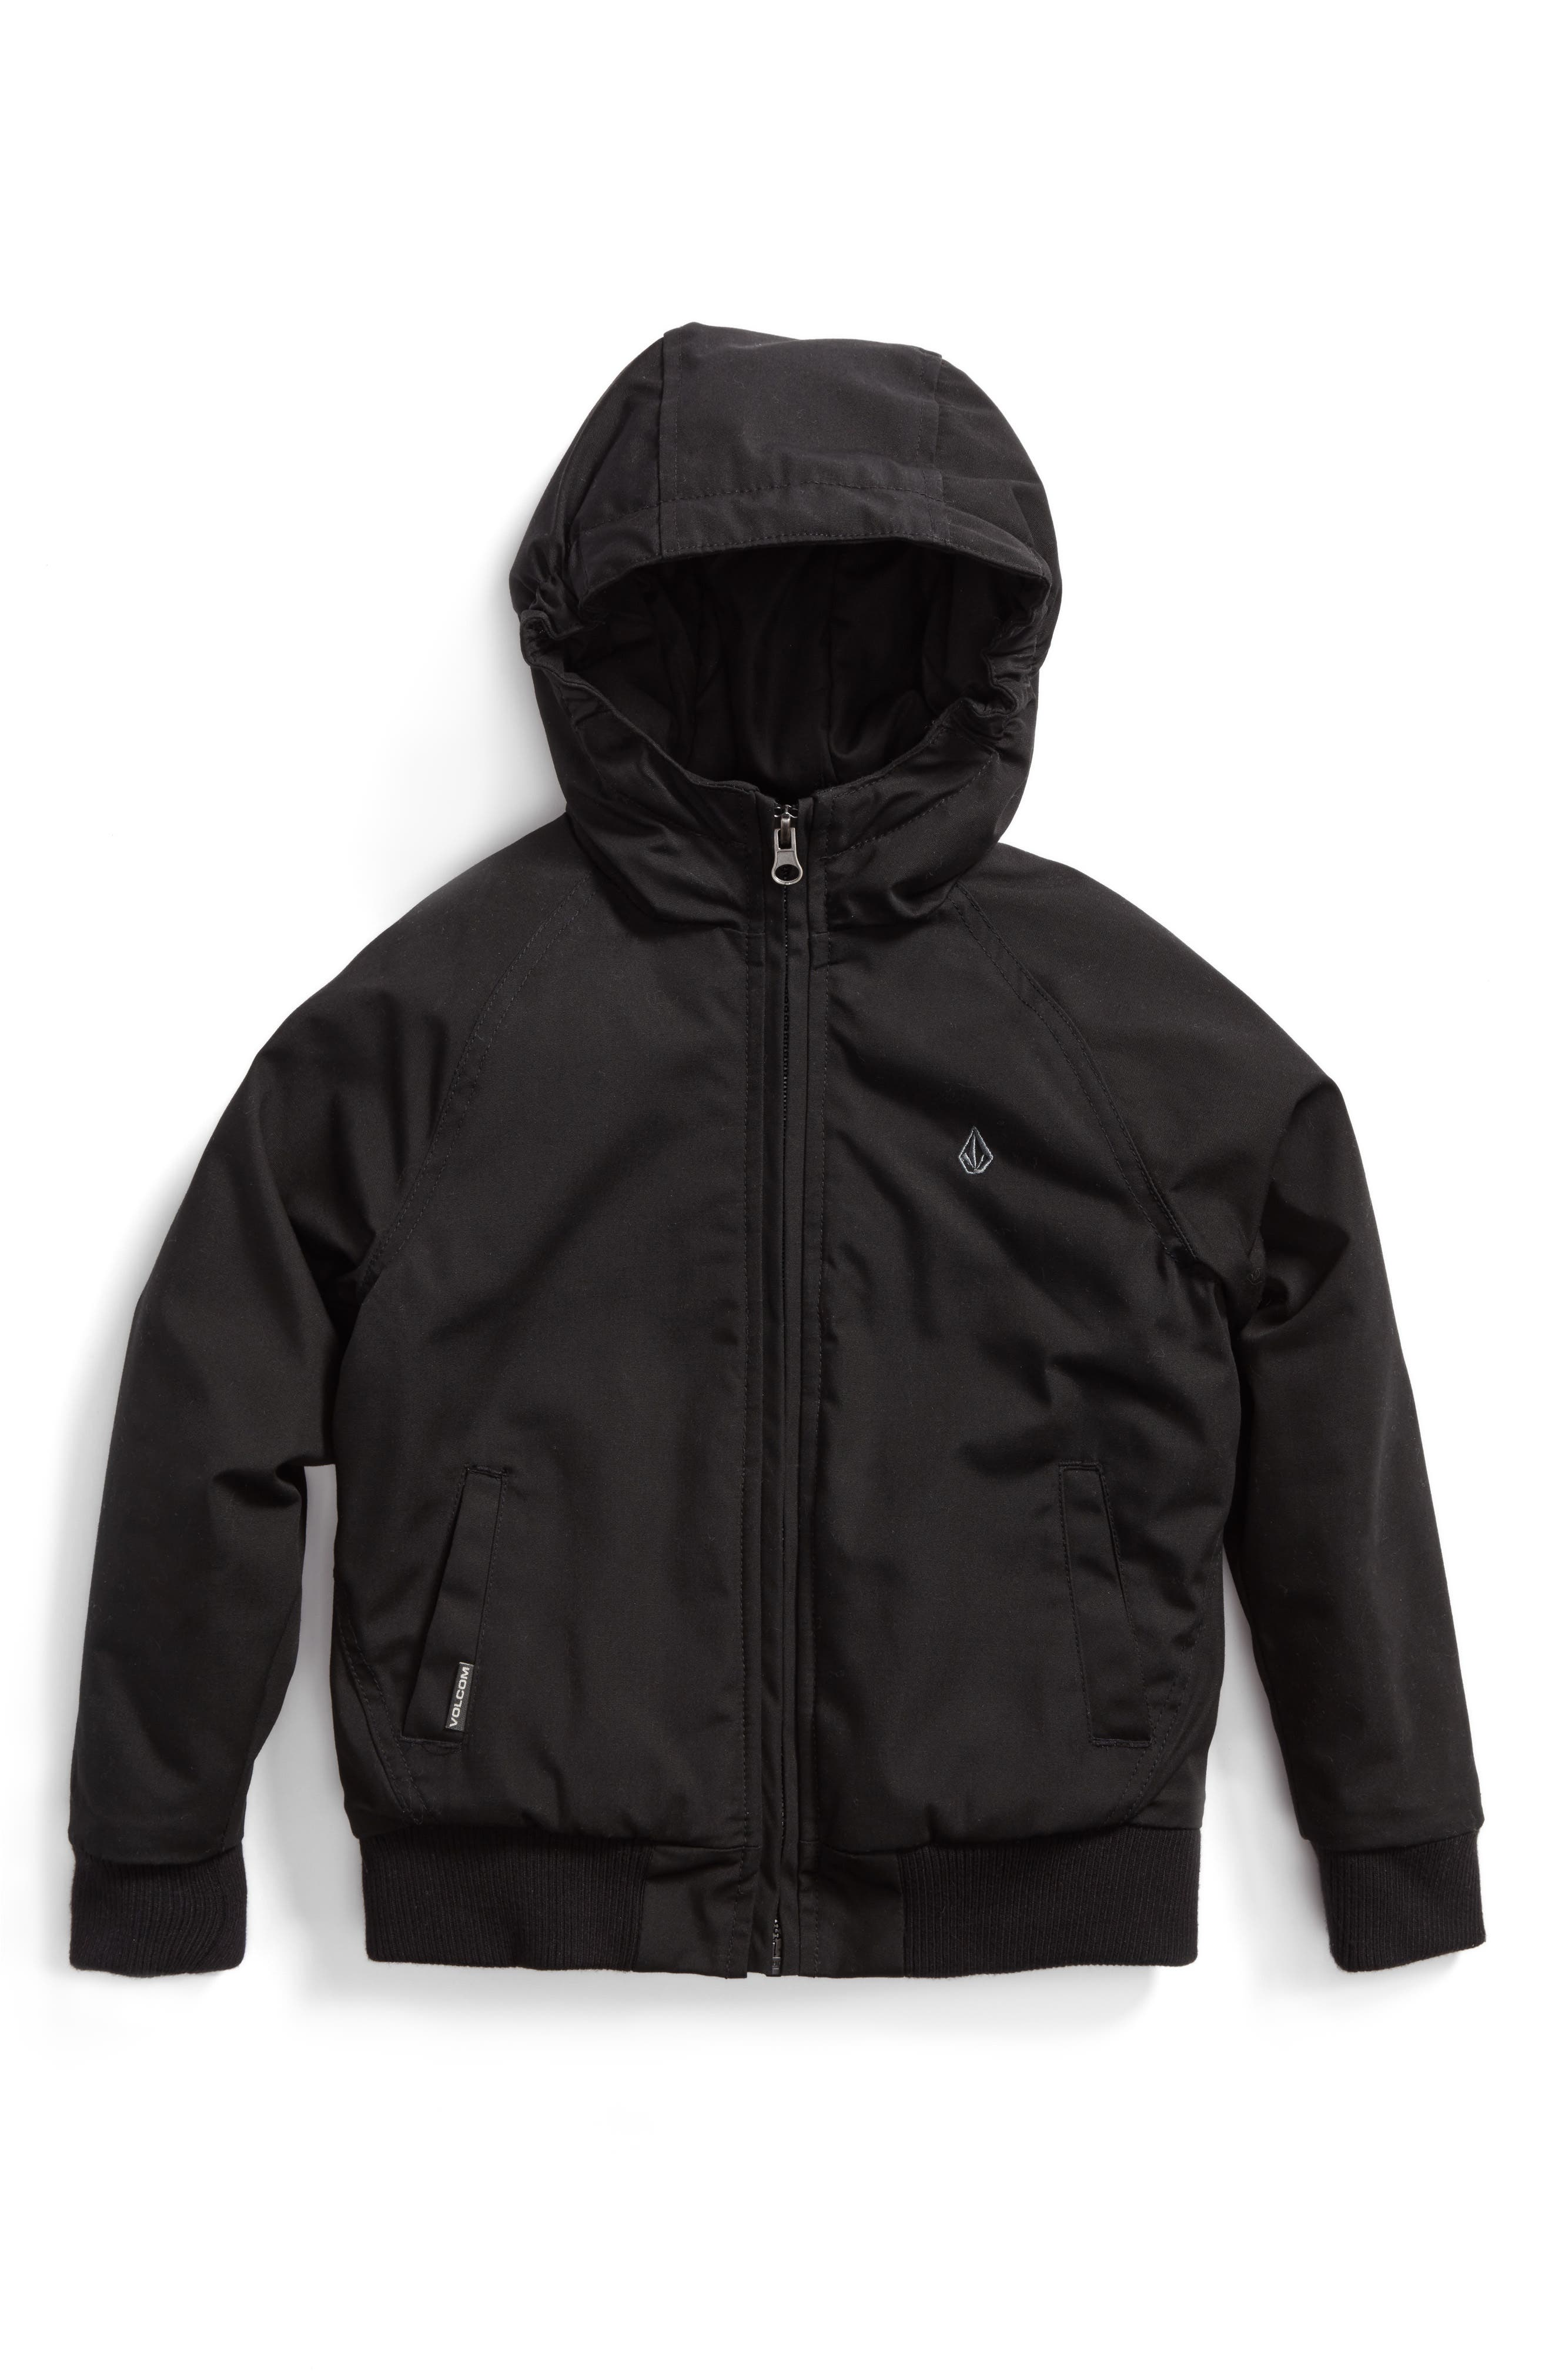 Main Image - Volcom Hernan Heavyweight Hooded Jacket (Toddler Boys & Little Boys)